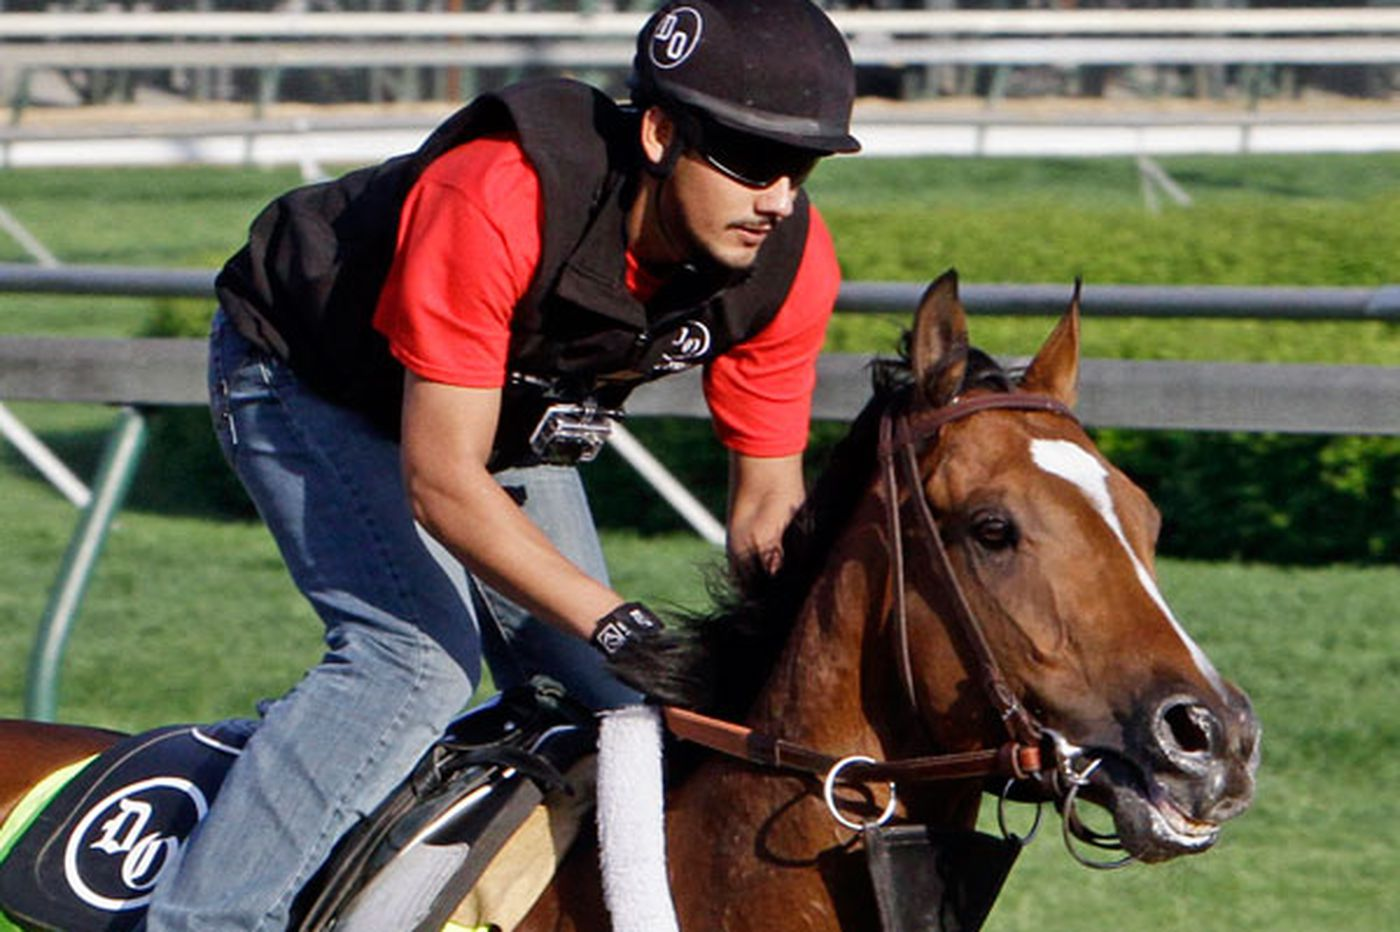 Jerardi's Kentucky Derby pick: Goldencents